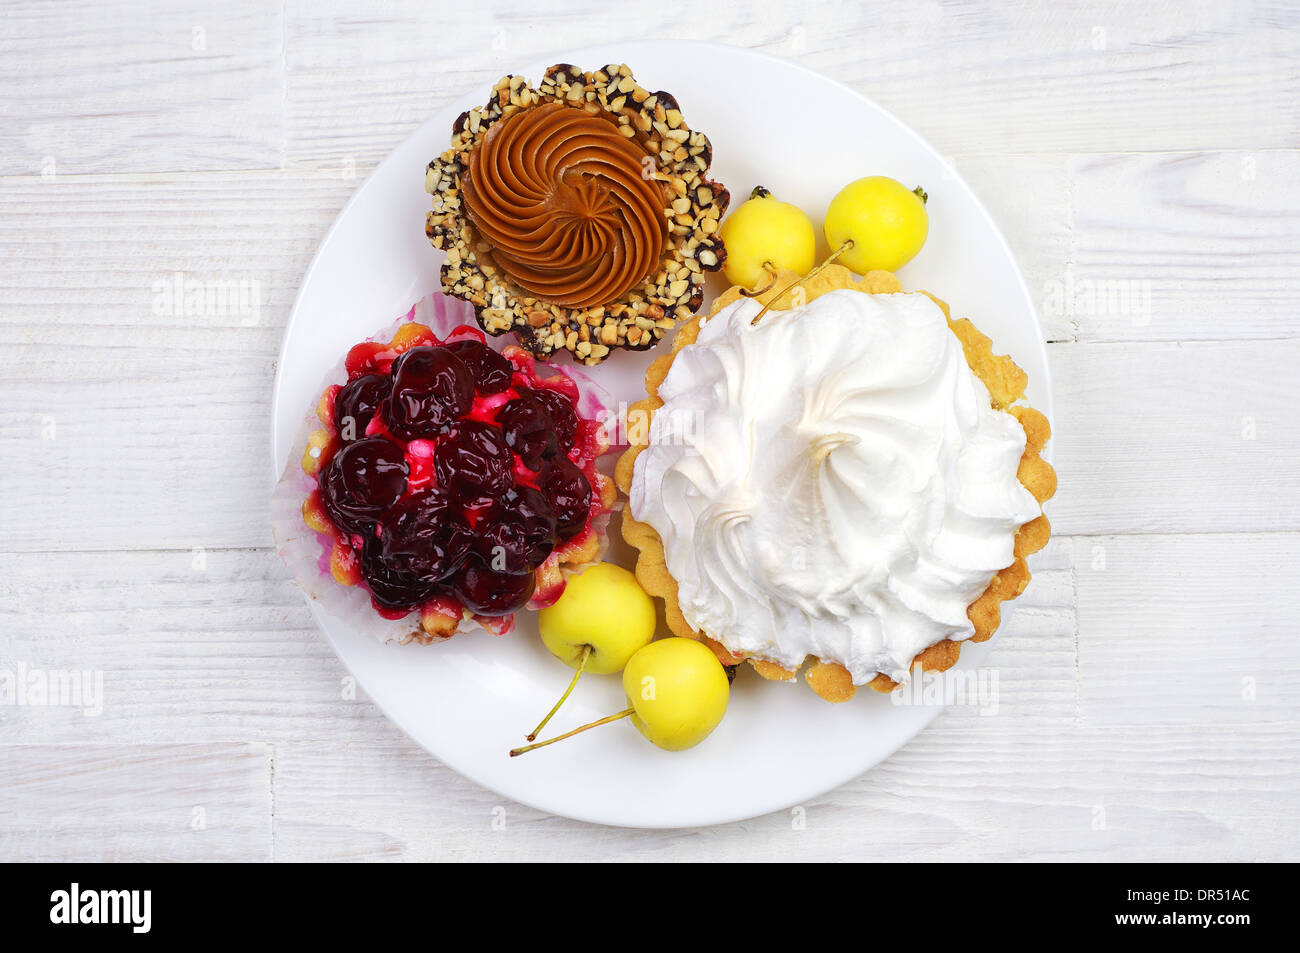 Different cake in a plate on table. Top view & Different cake in a plate on table. Top view Stock Photo: 65879028 ...